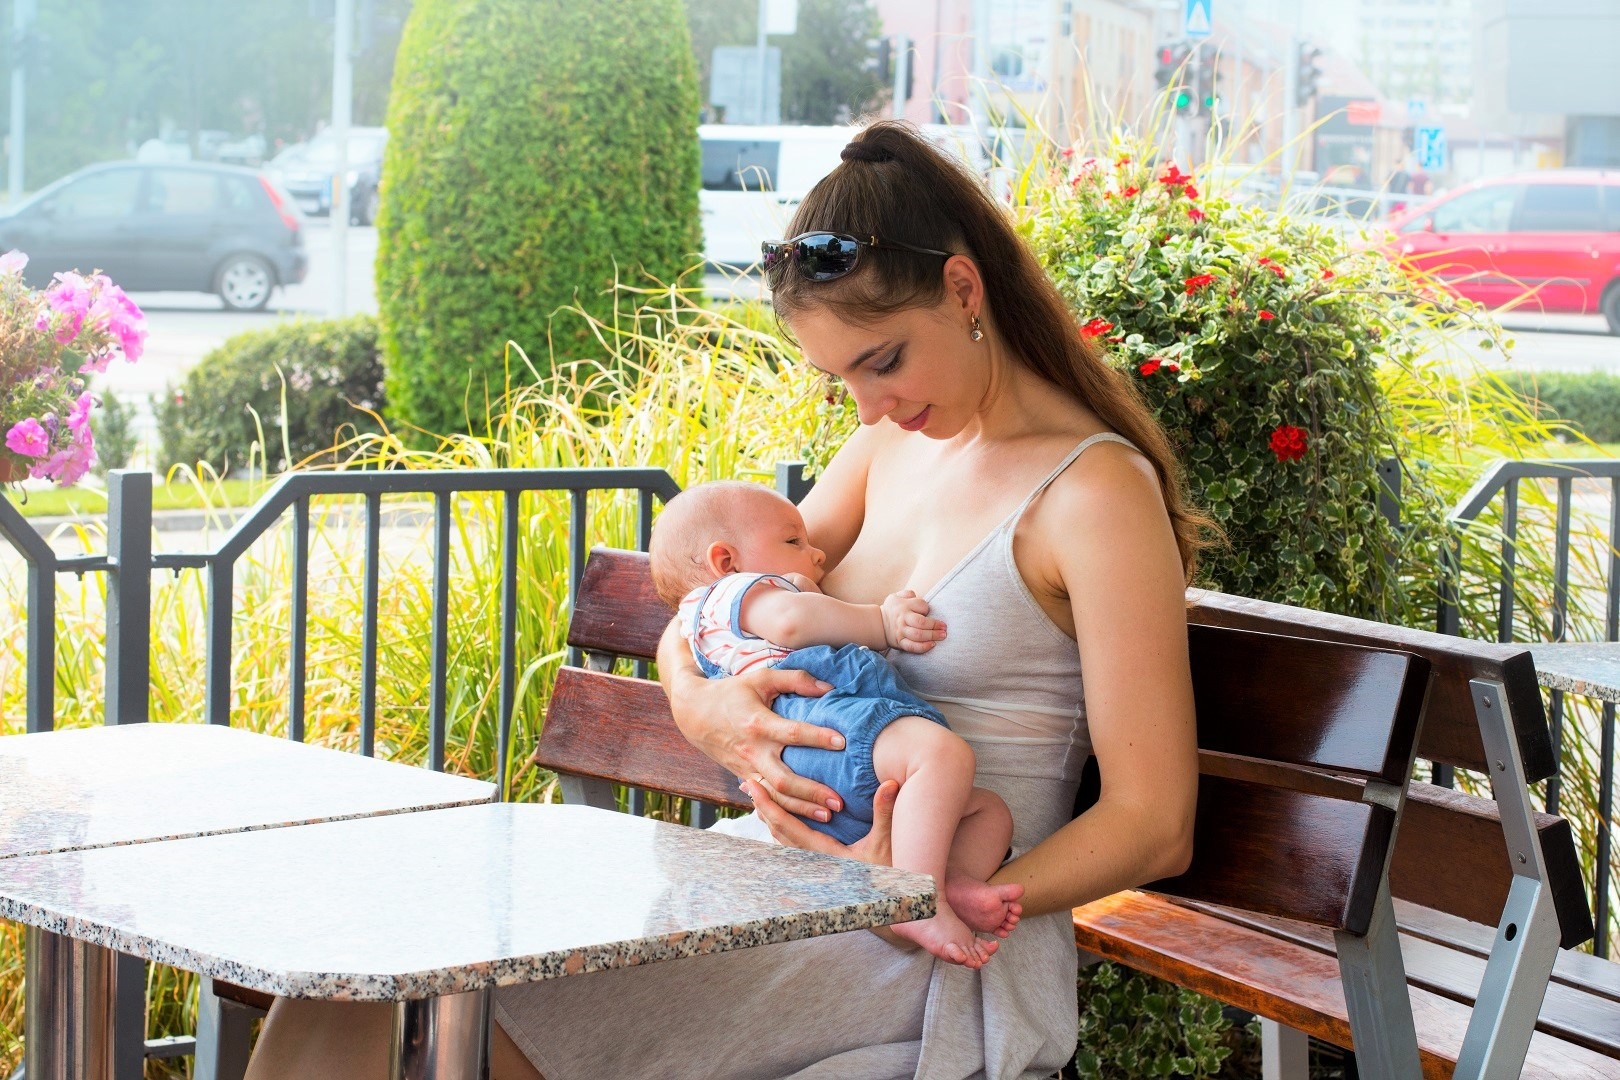 Young Mother Public Breastfeeding on Bench Outside